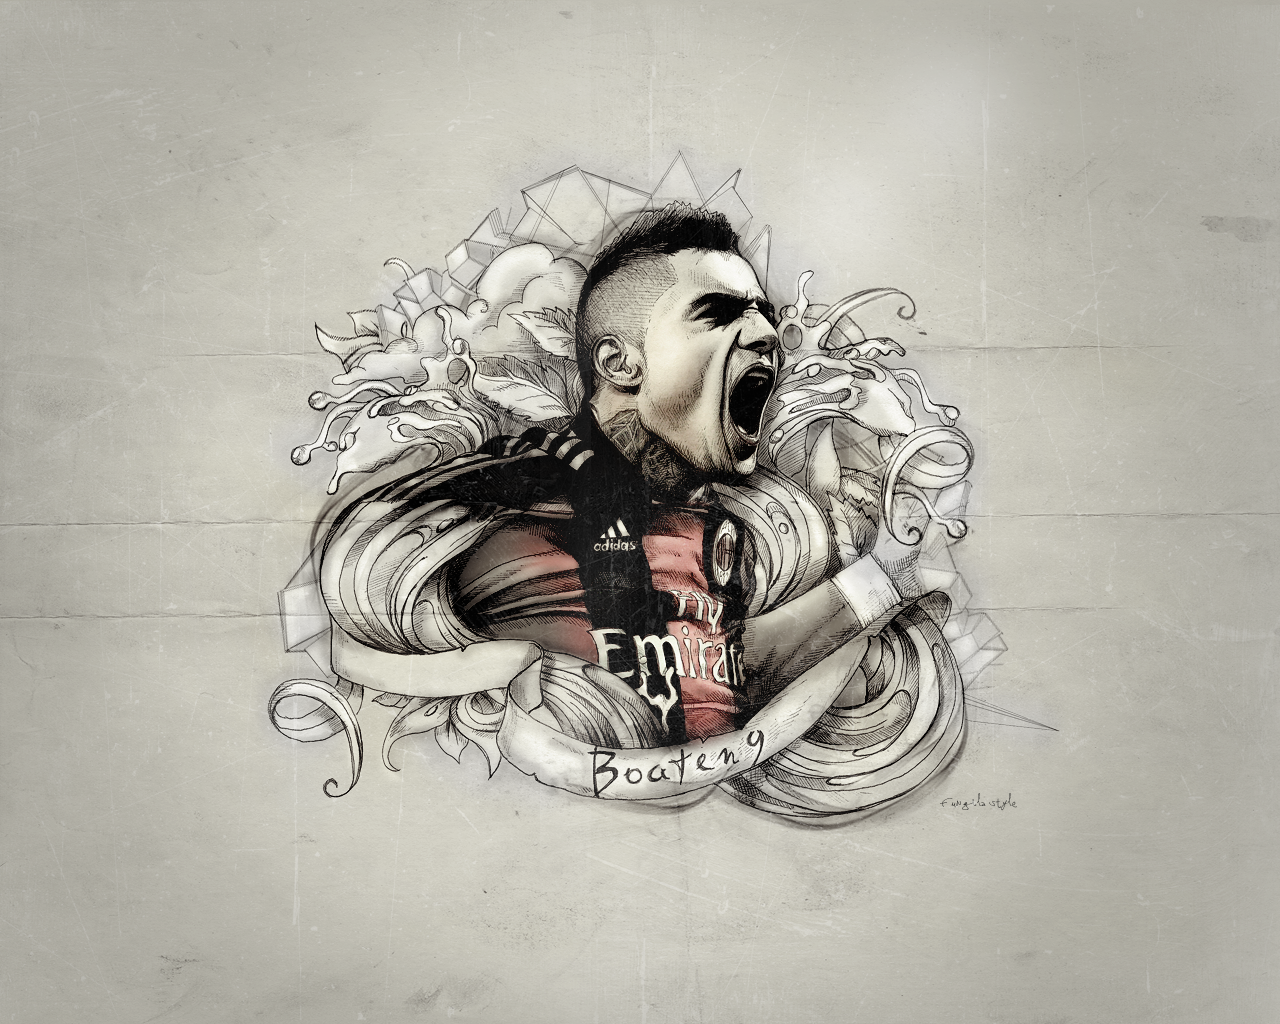 Kevin Prince Boateng Football Wallpaper 1280x1024